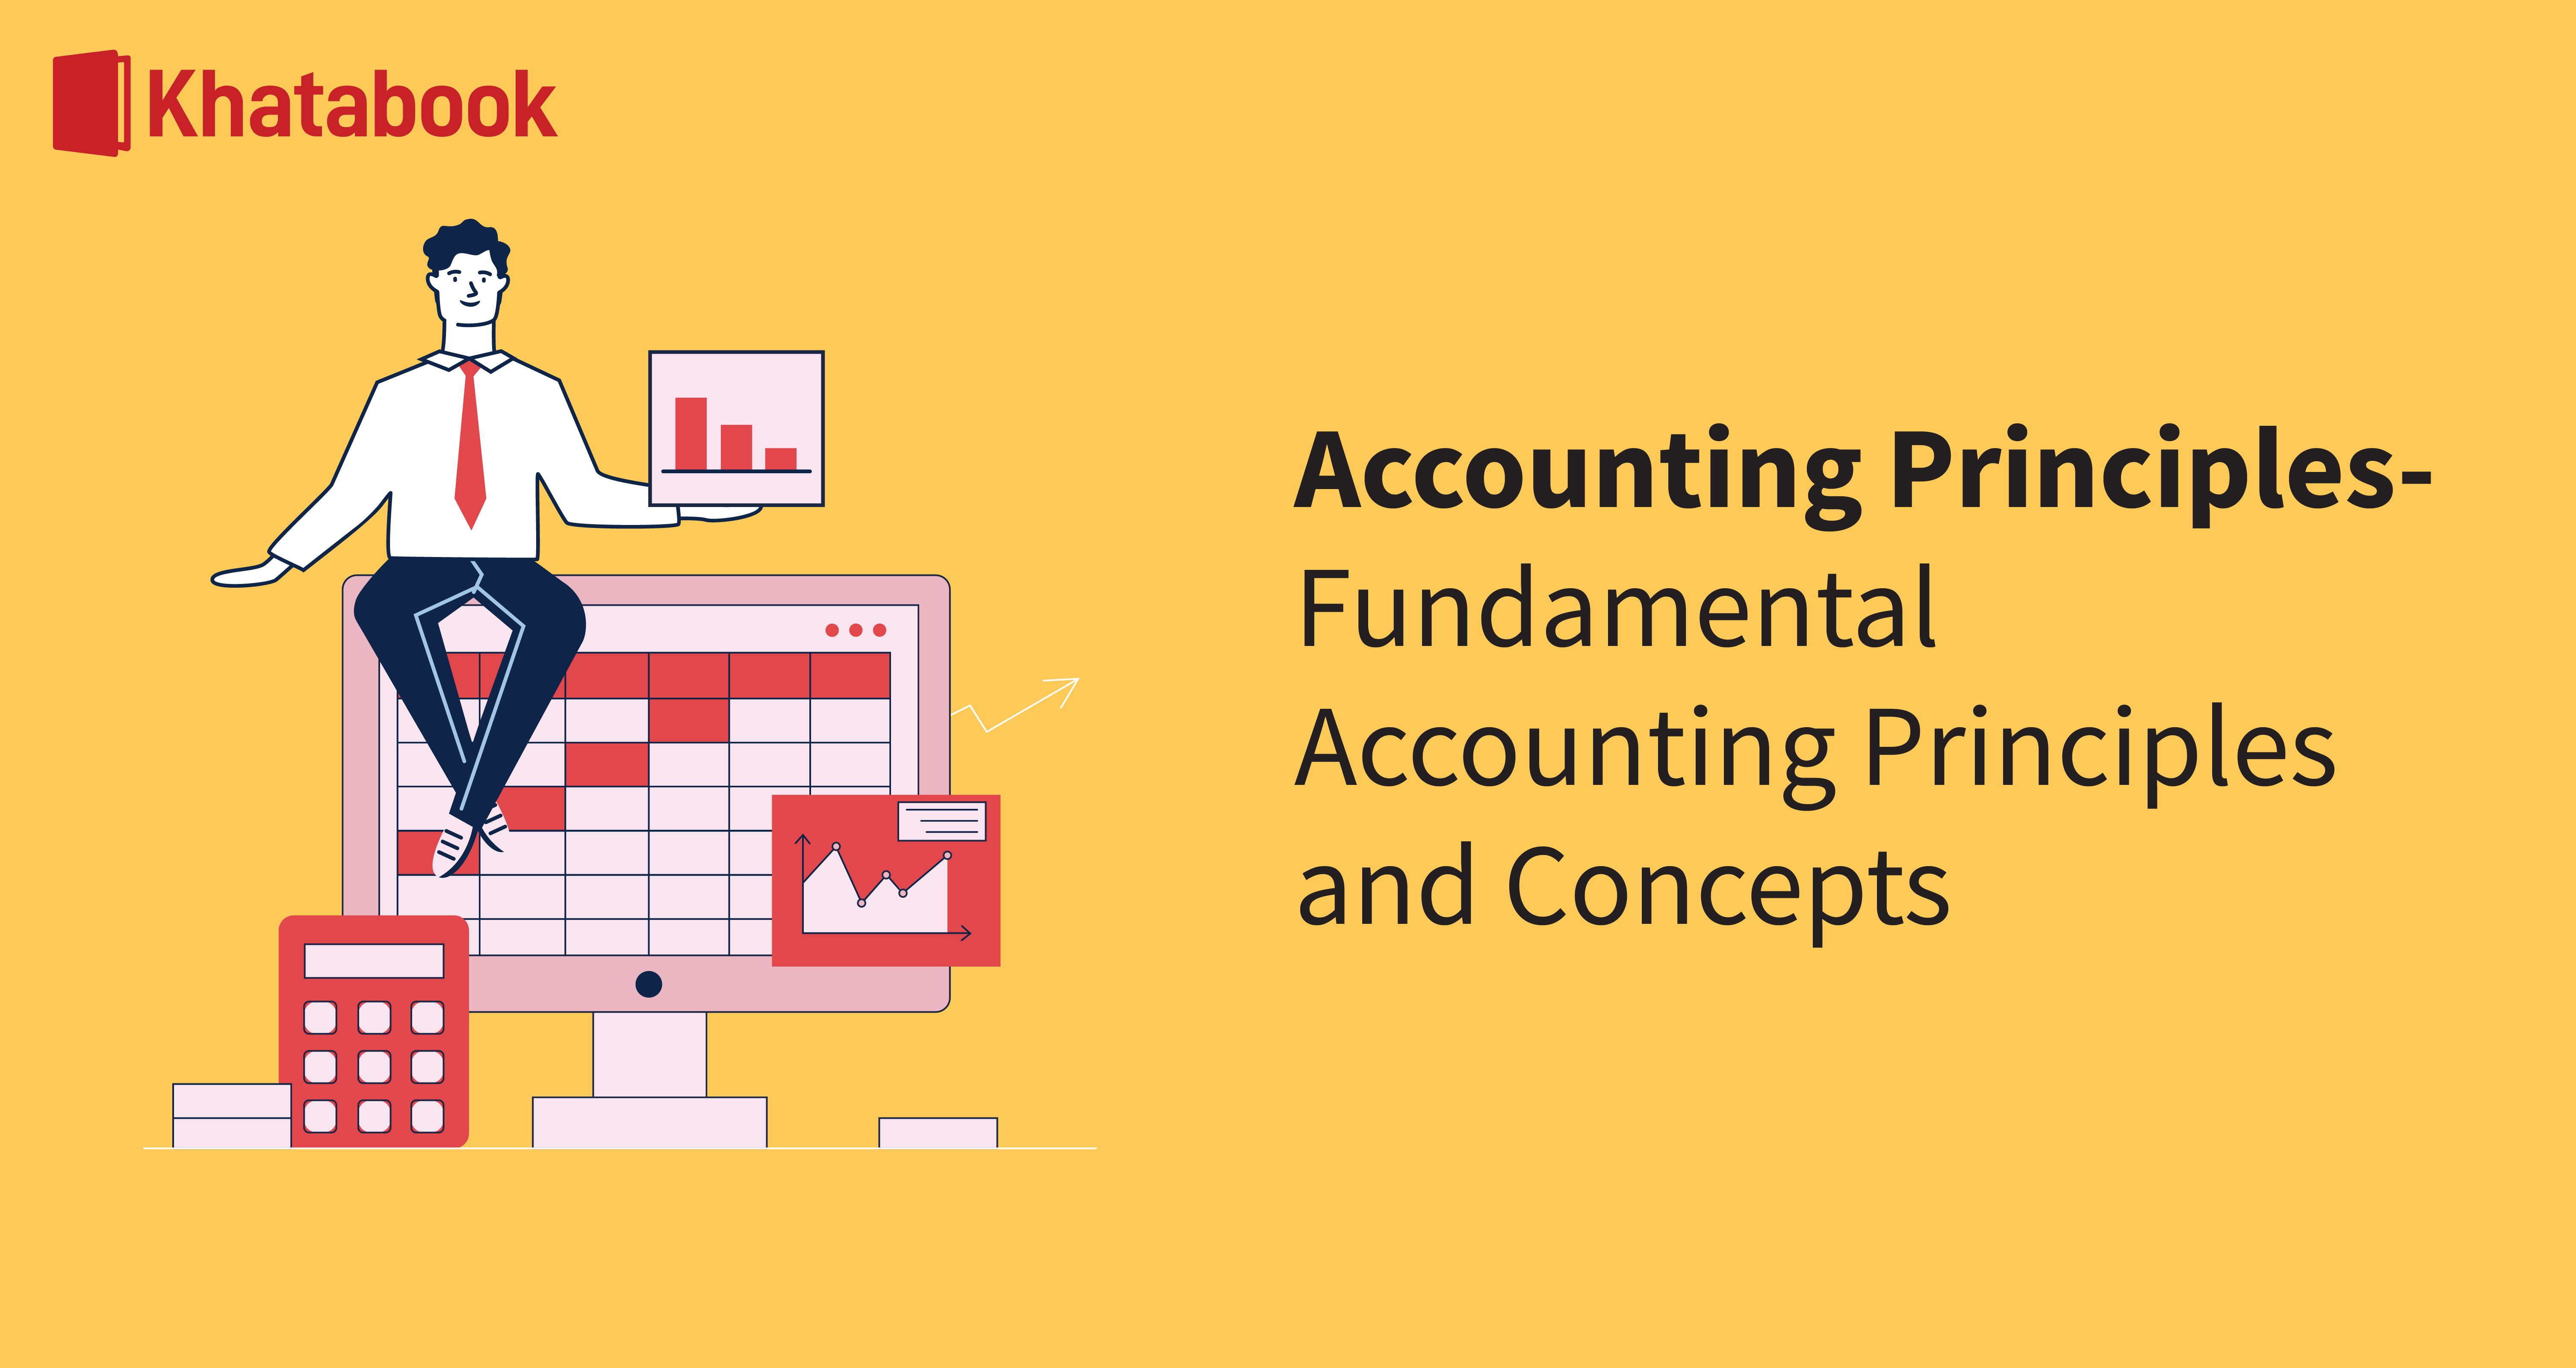 Learn About Accounting Principles and Concepts